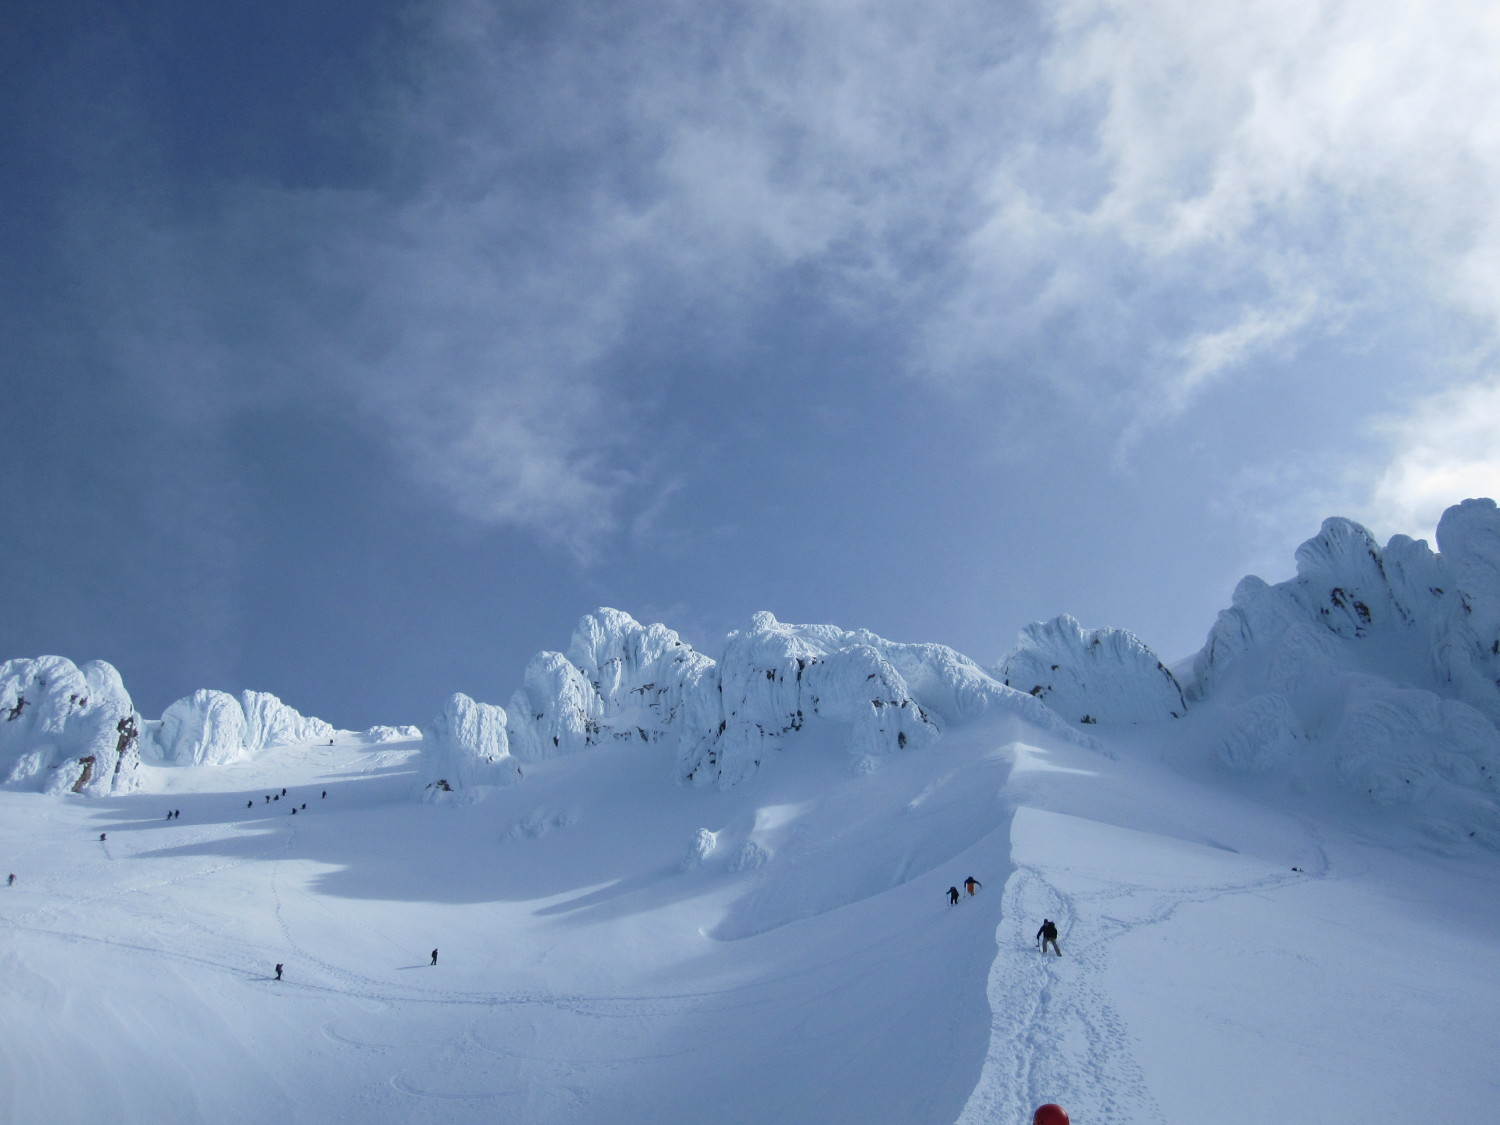 Unknown climber views the summit on Mount Hood, June 1, 2013, by Thomas Poremba.